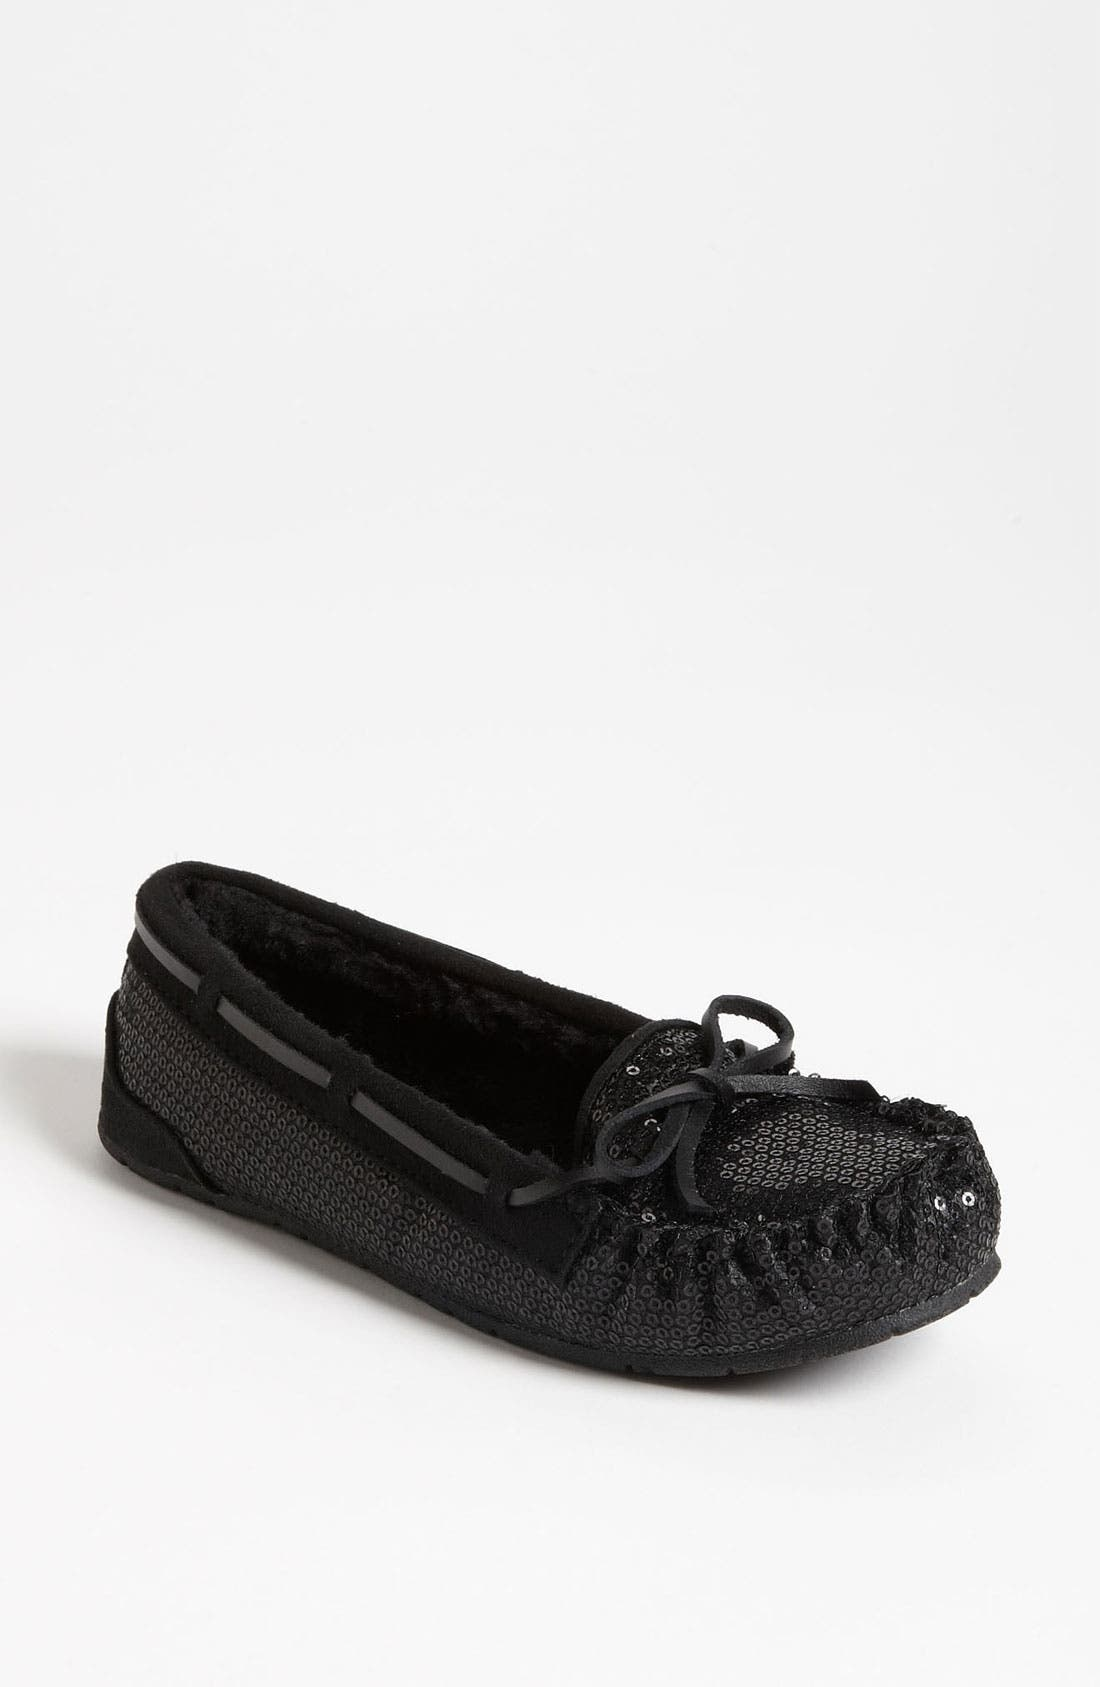 Alternate Image 1 Selected - BC Footwear 'All Decked Out' Slipper